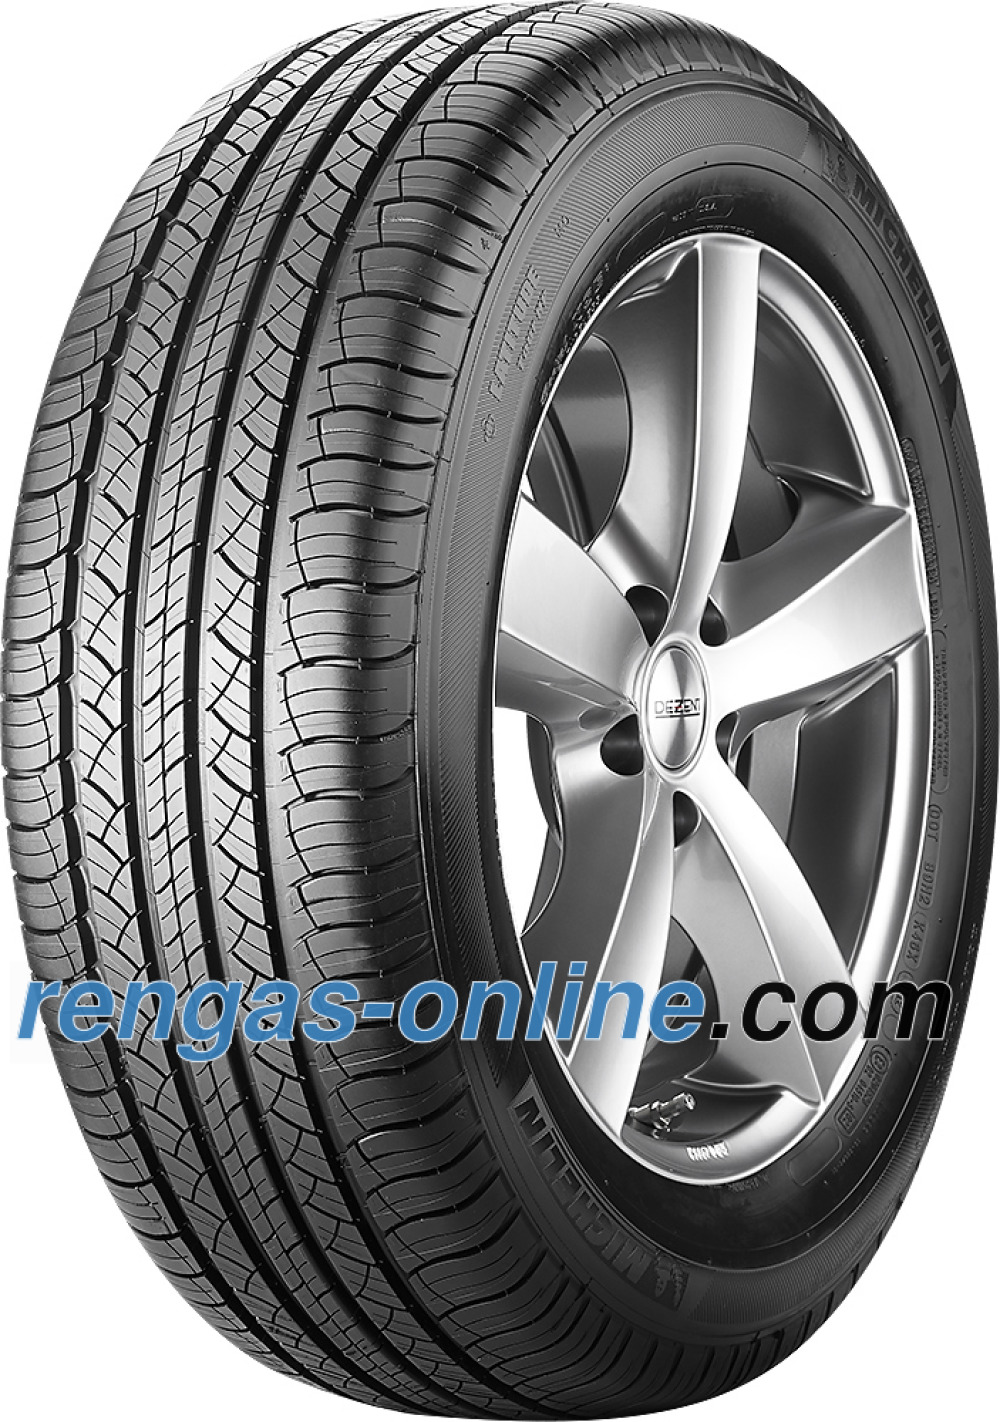 michelin-latitude-tour-hp-23555-r18-100v